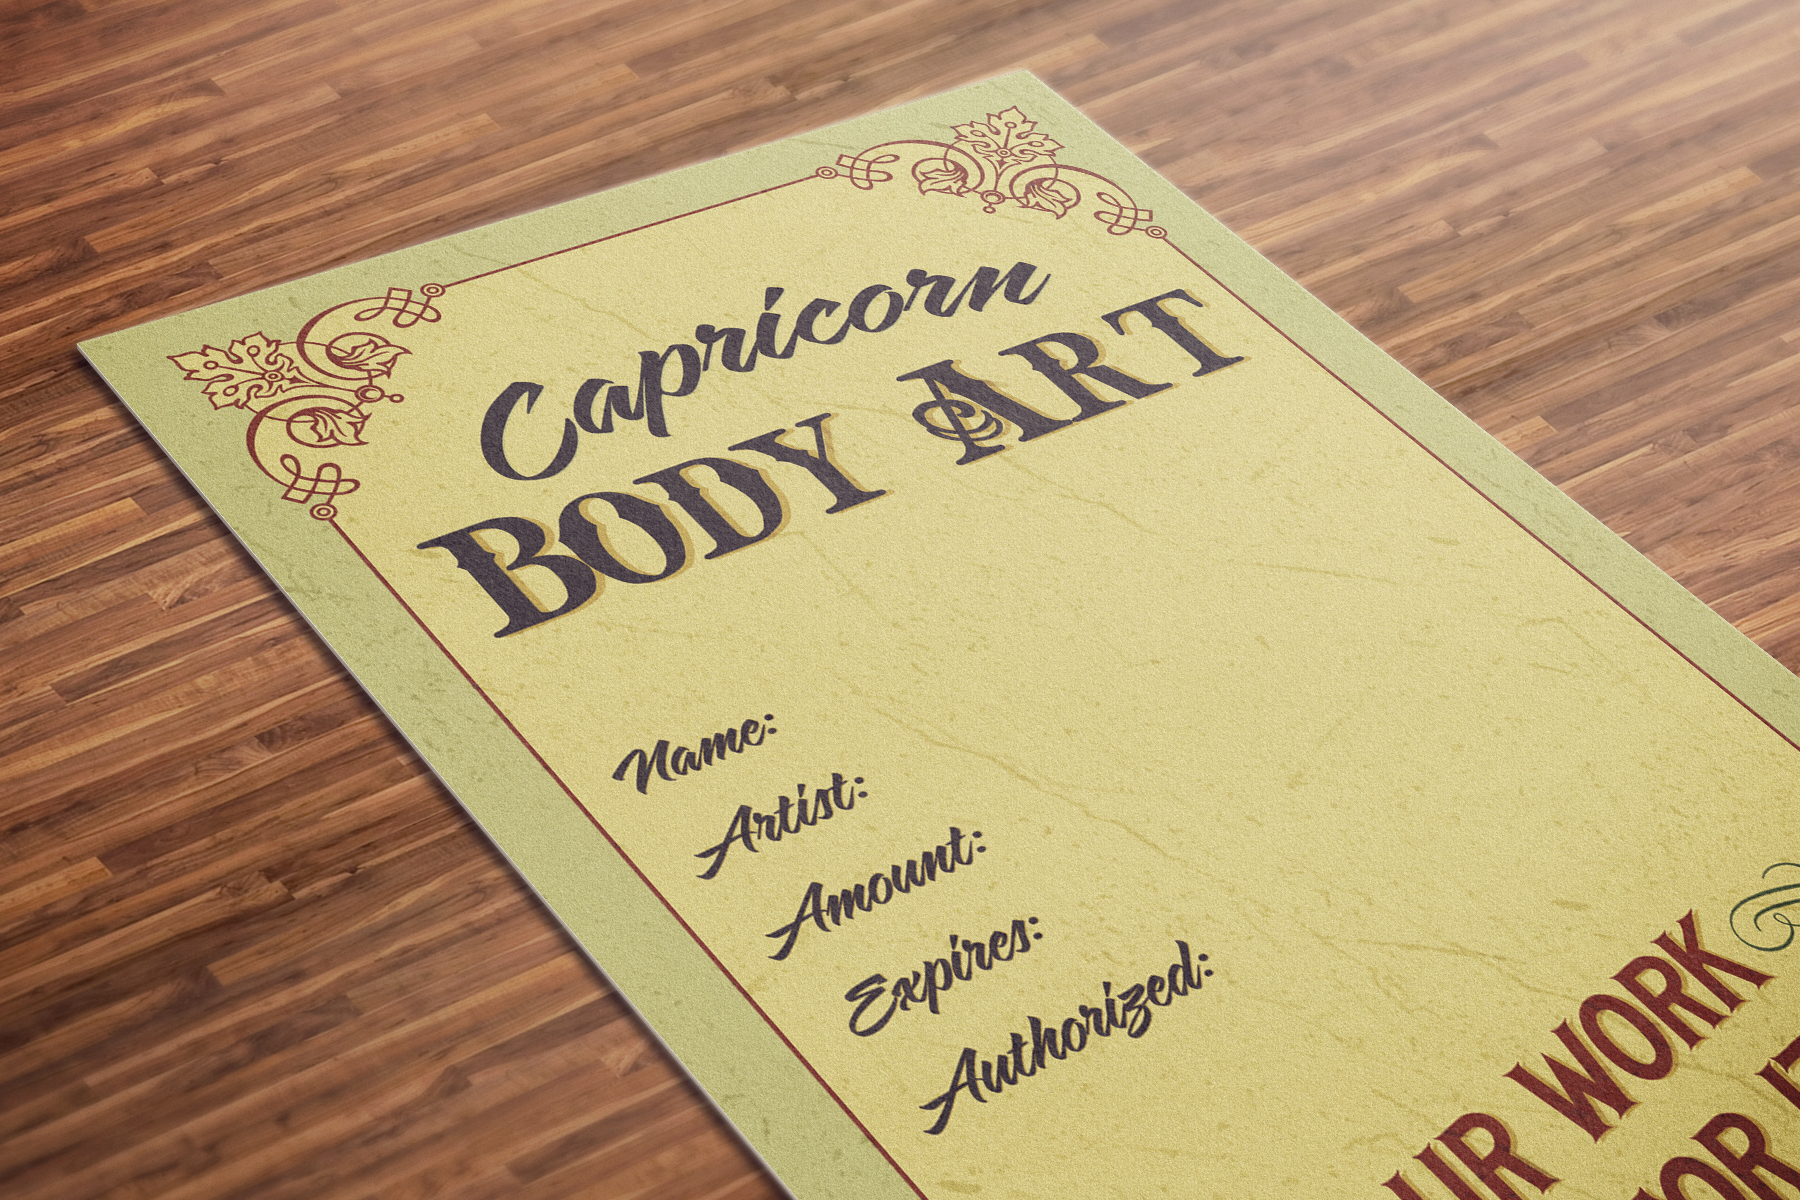 A vintage-style gift voucher for Capricorn Body Art, with the words 'our work speaks for itself'.